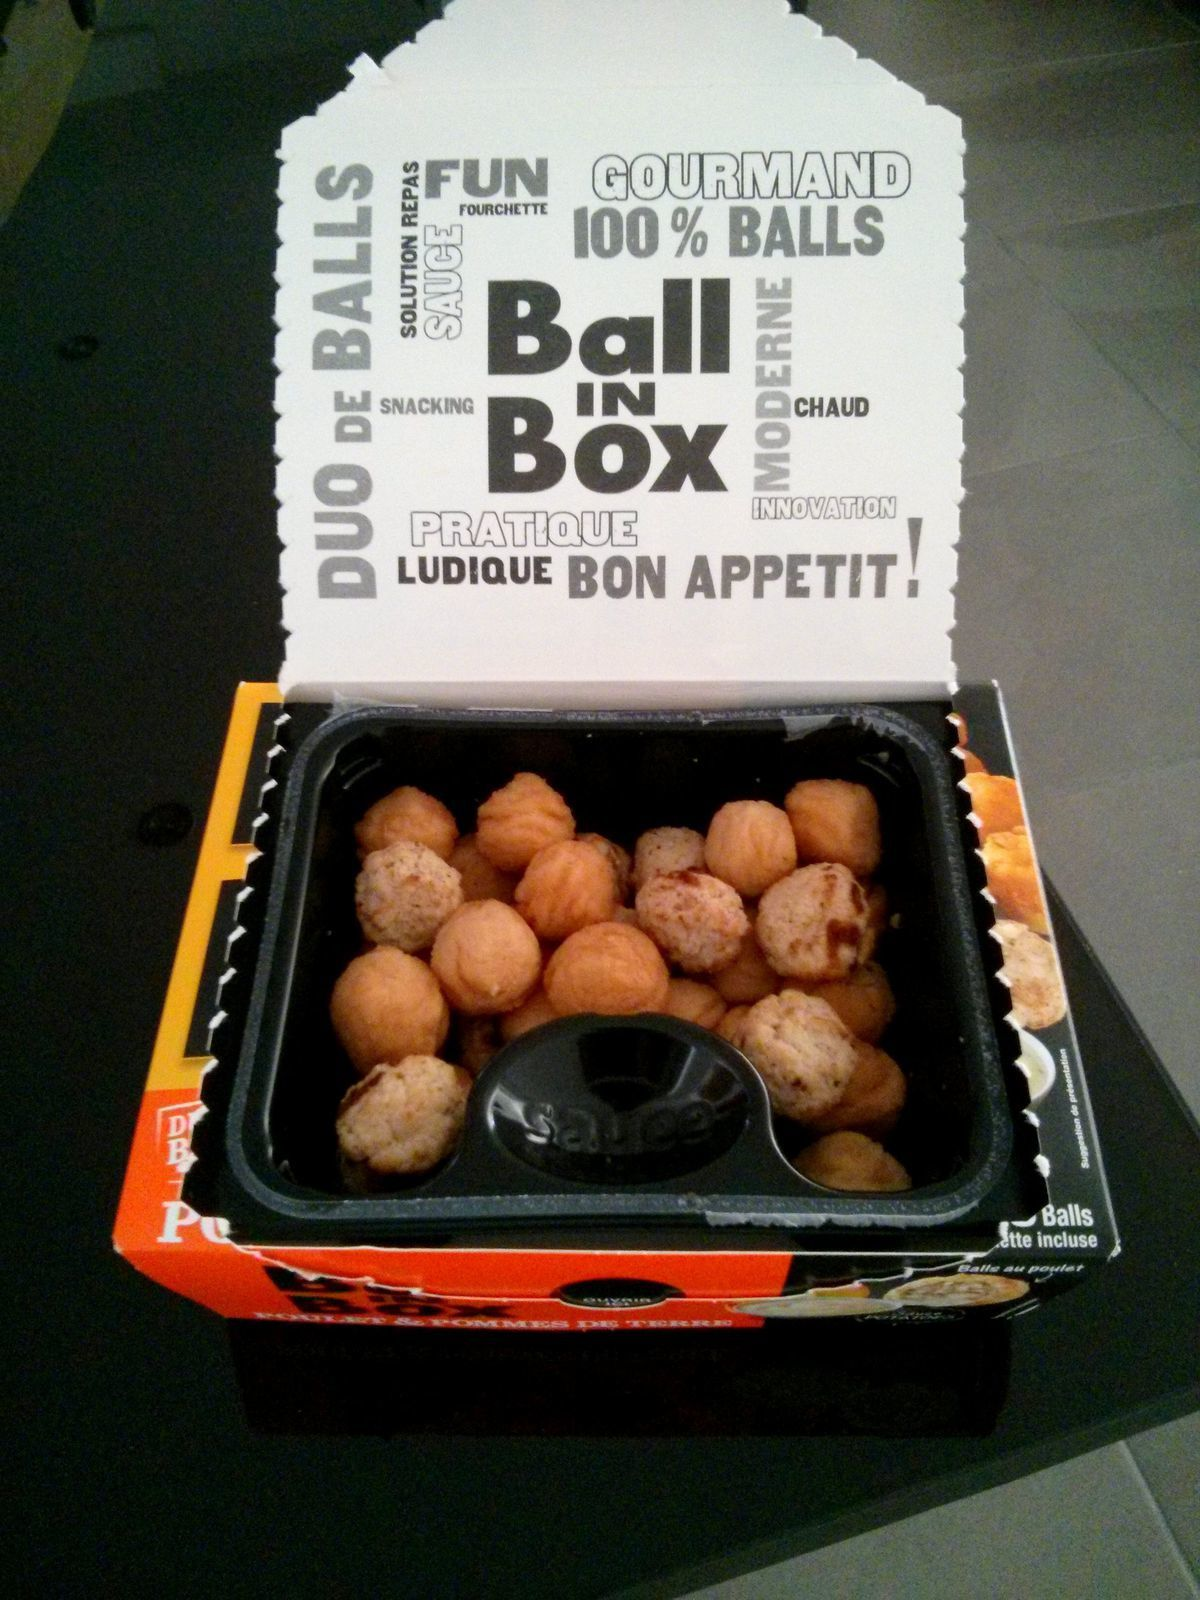 Ball in Box : junk food ou box pratique ?